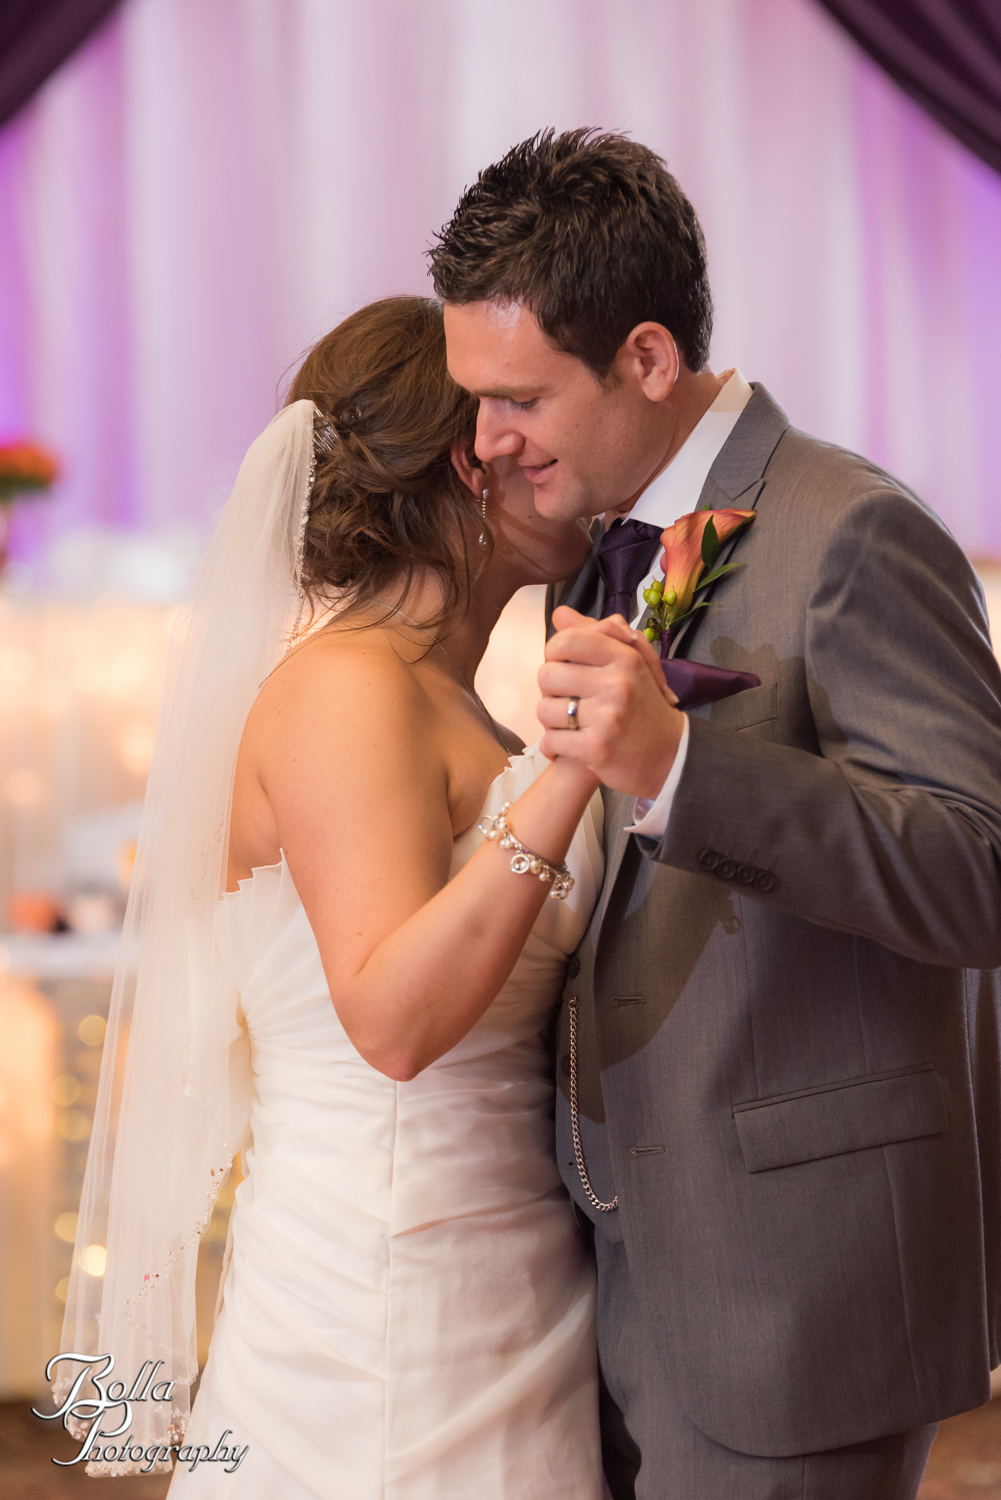 Bolla_Photography_St_Louis_wedding_photographer-0449.jpg